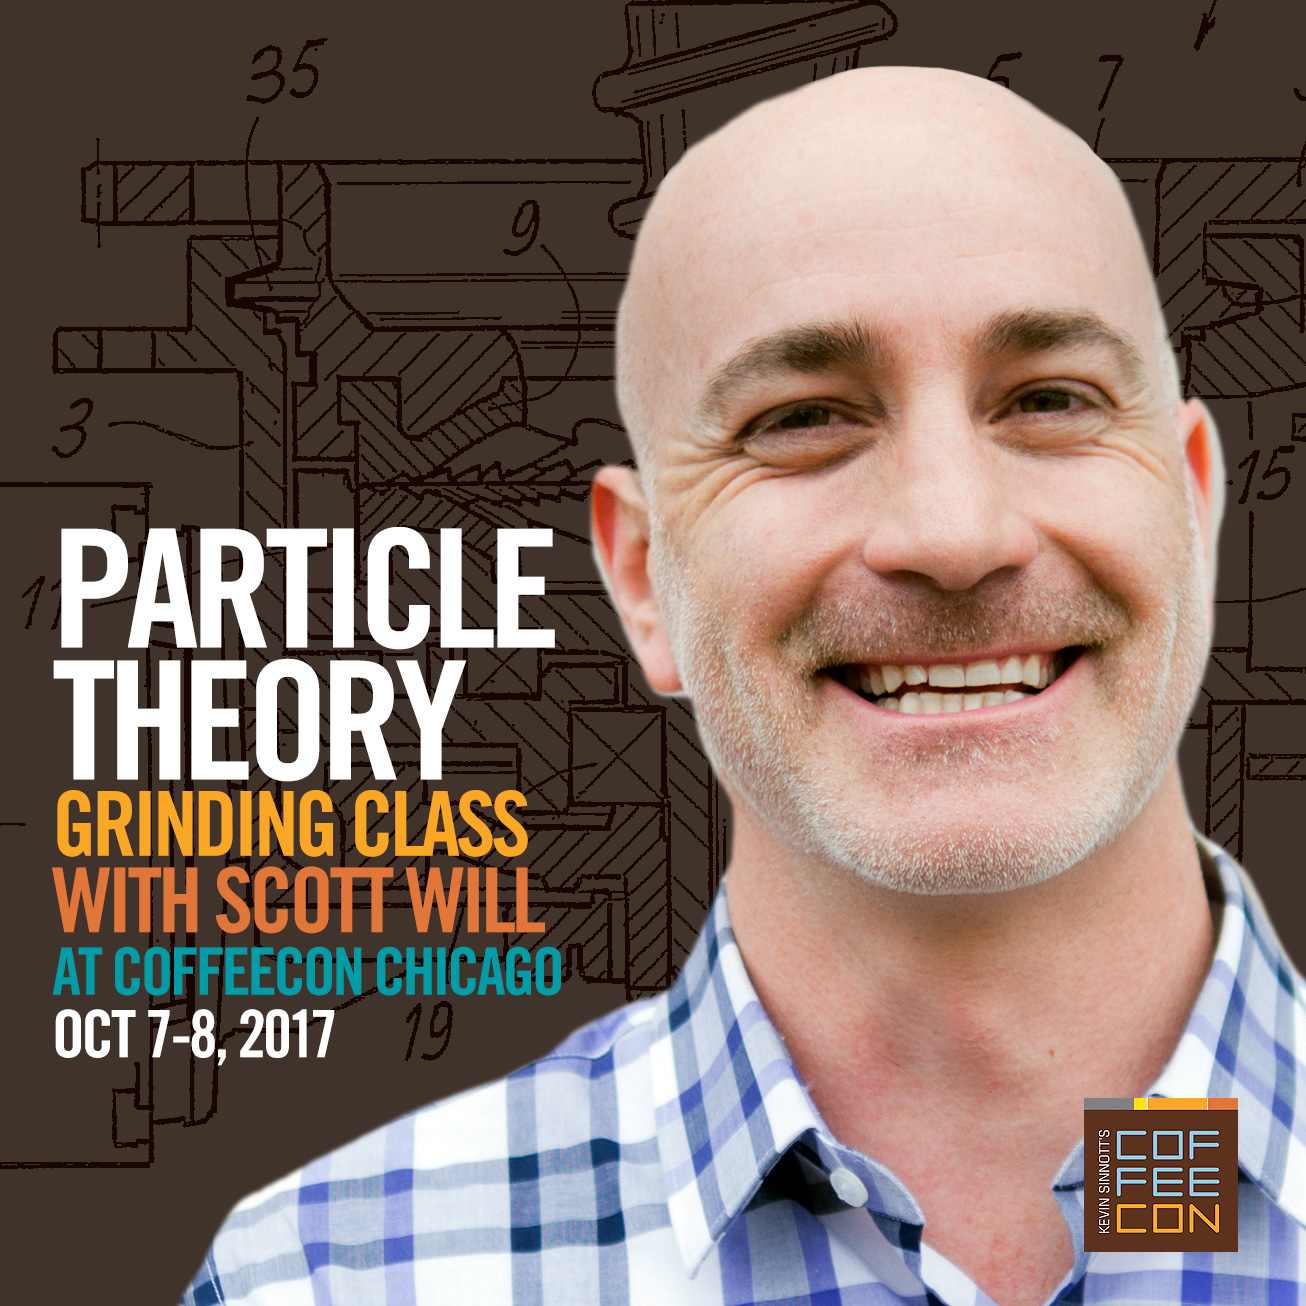 Particle Theory Grinding Class with Scott Will at CoffeeConChi 2017